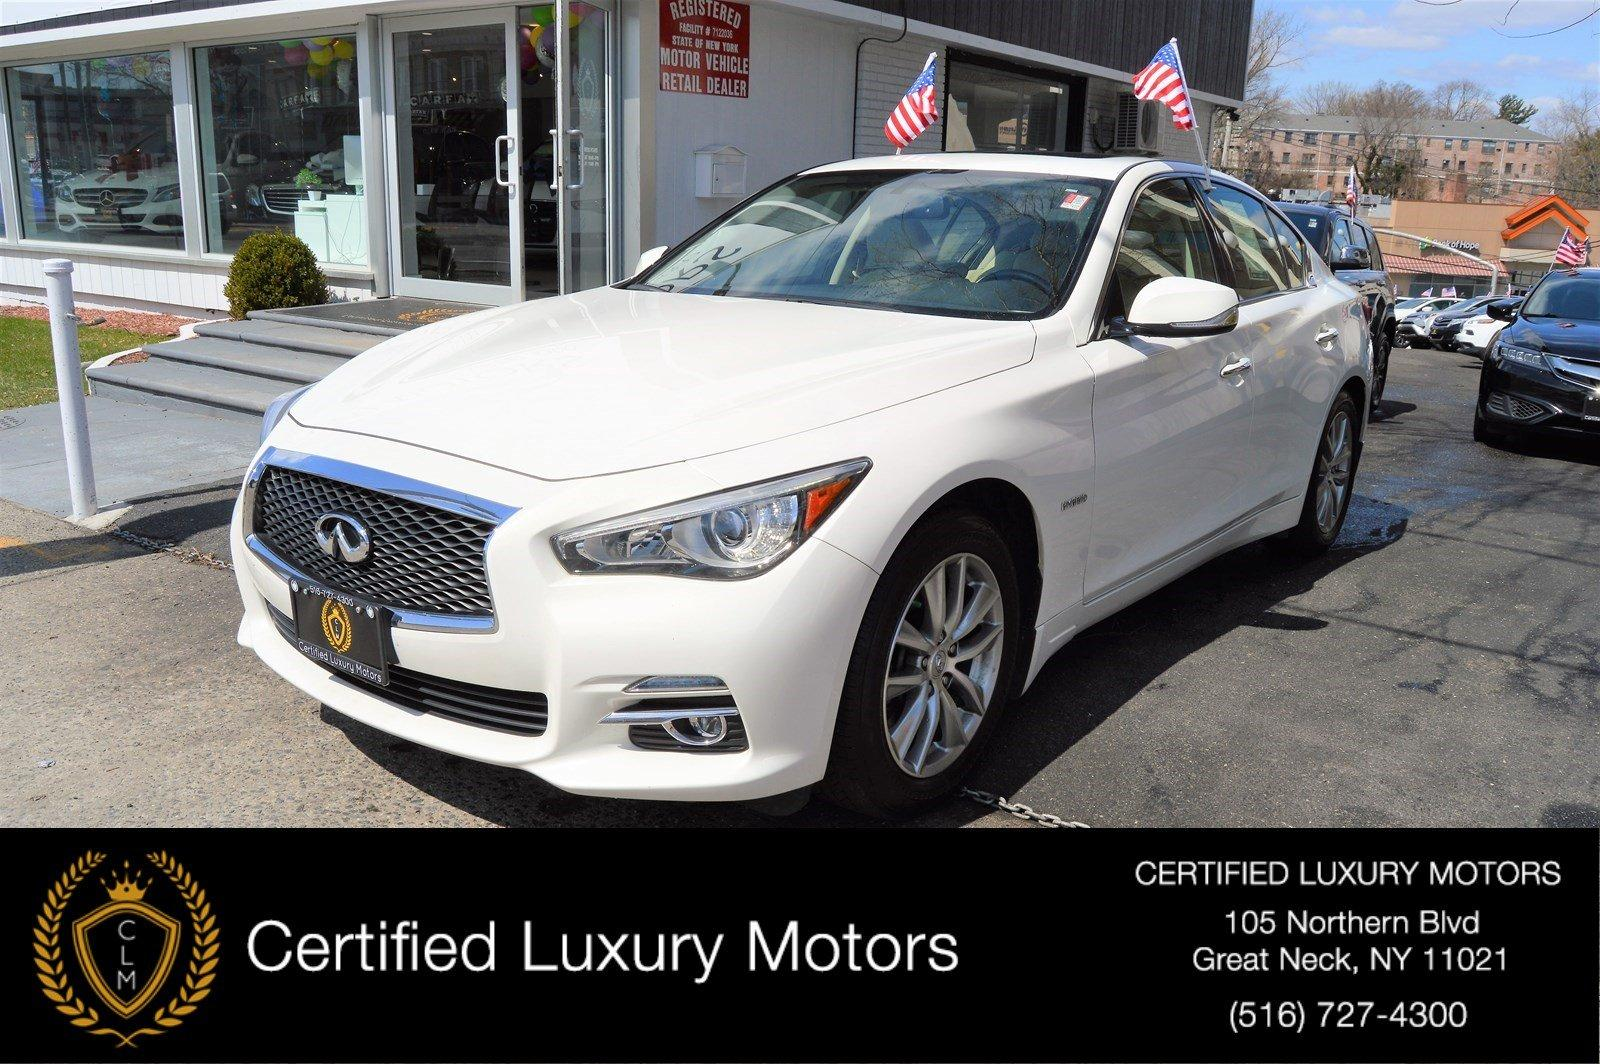 2014 infiniti q50 hybrid premium stock 1136 for sale near great neck ny ny infiniti dealer. Black Bedroom Furniture Sets. Home Design Ideas